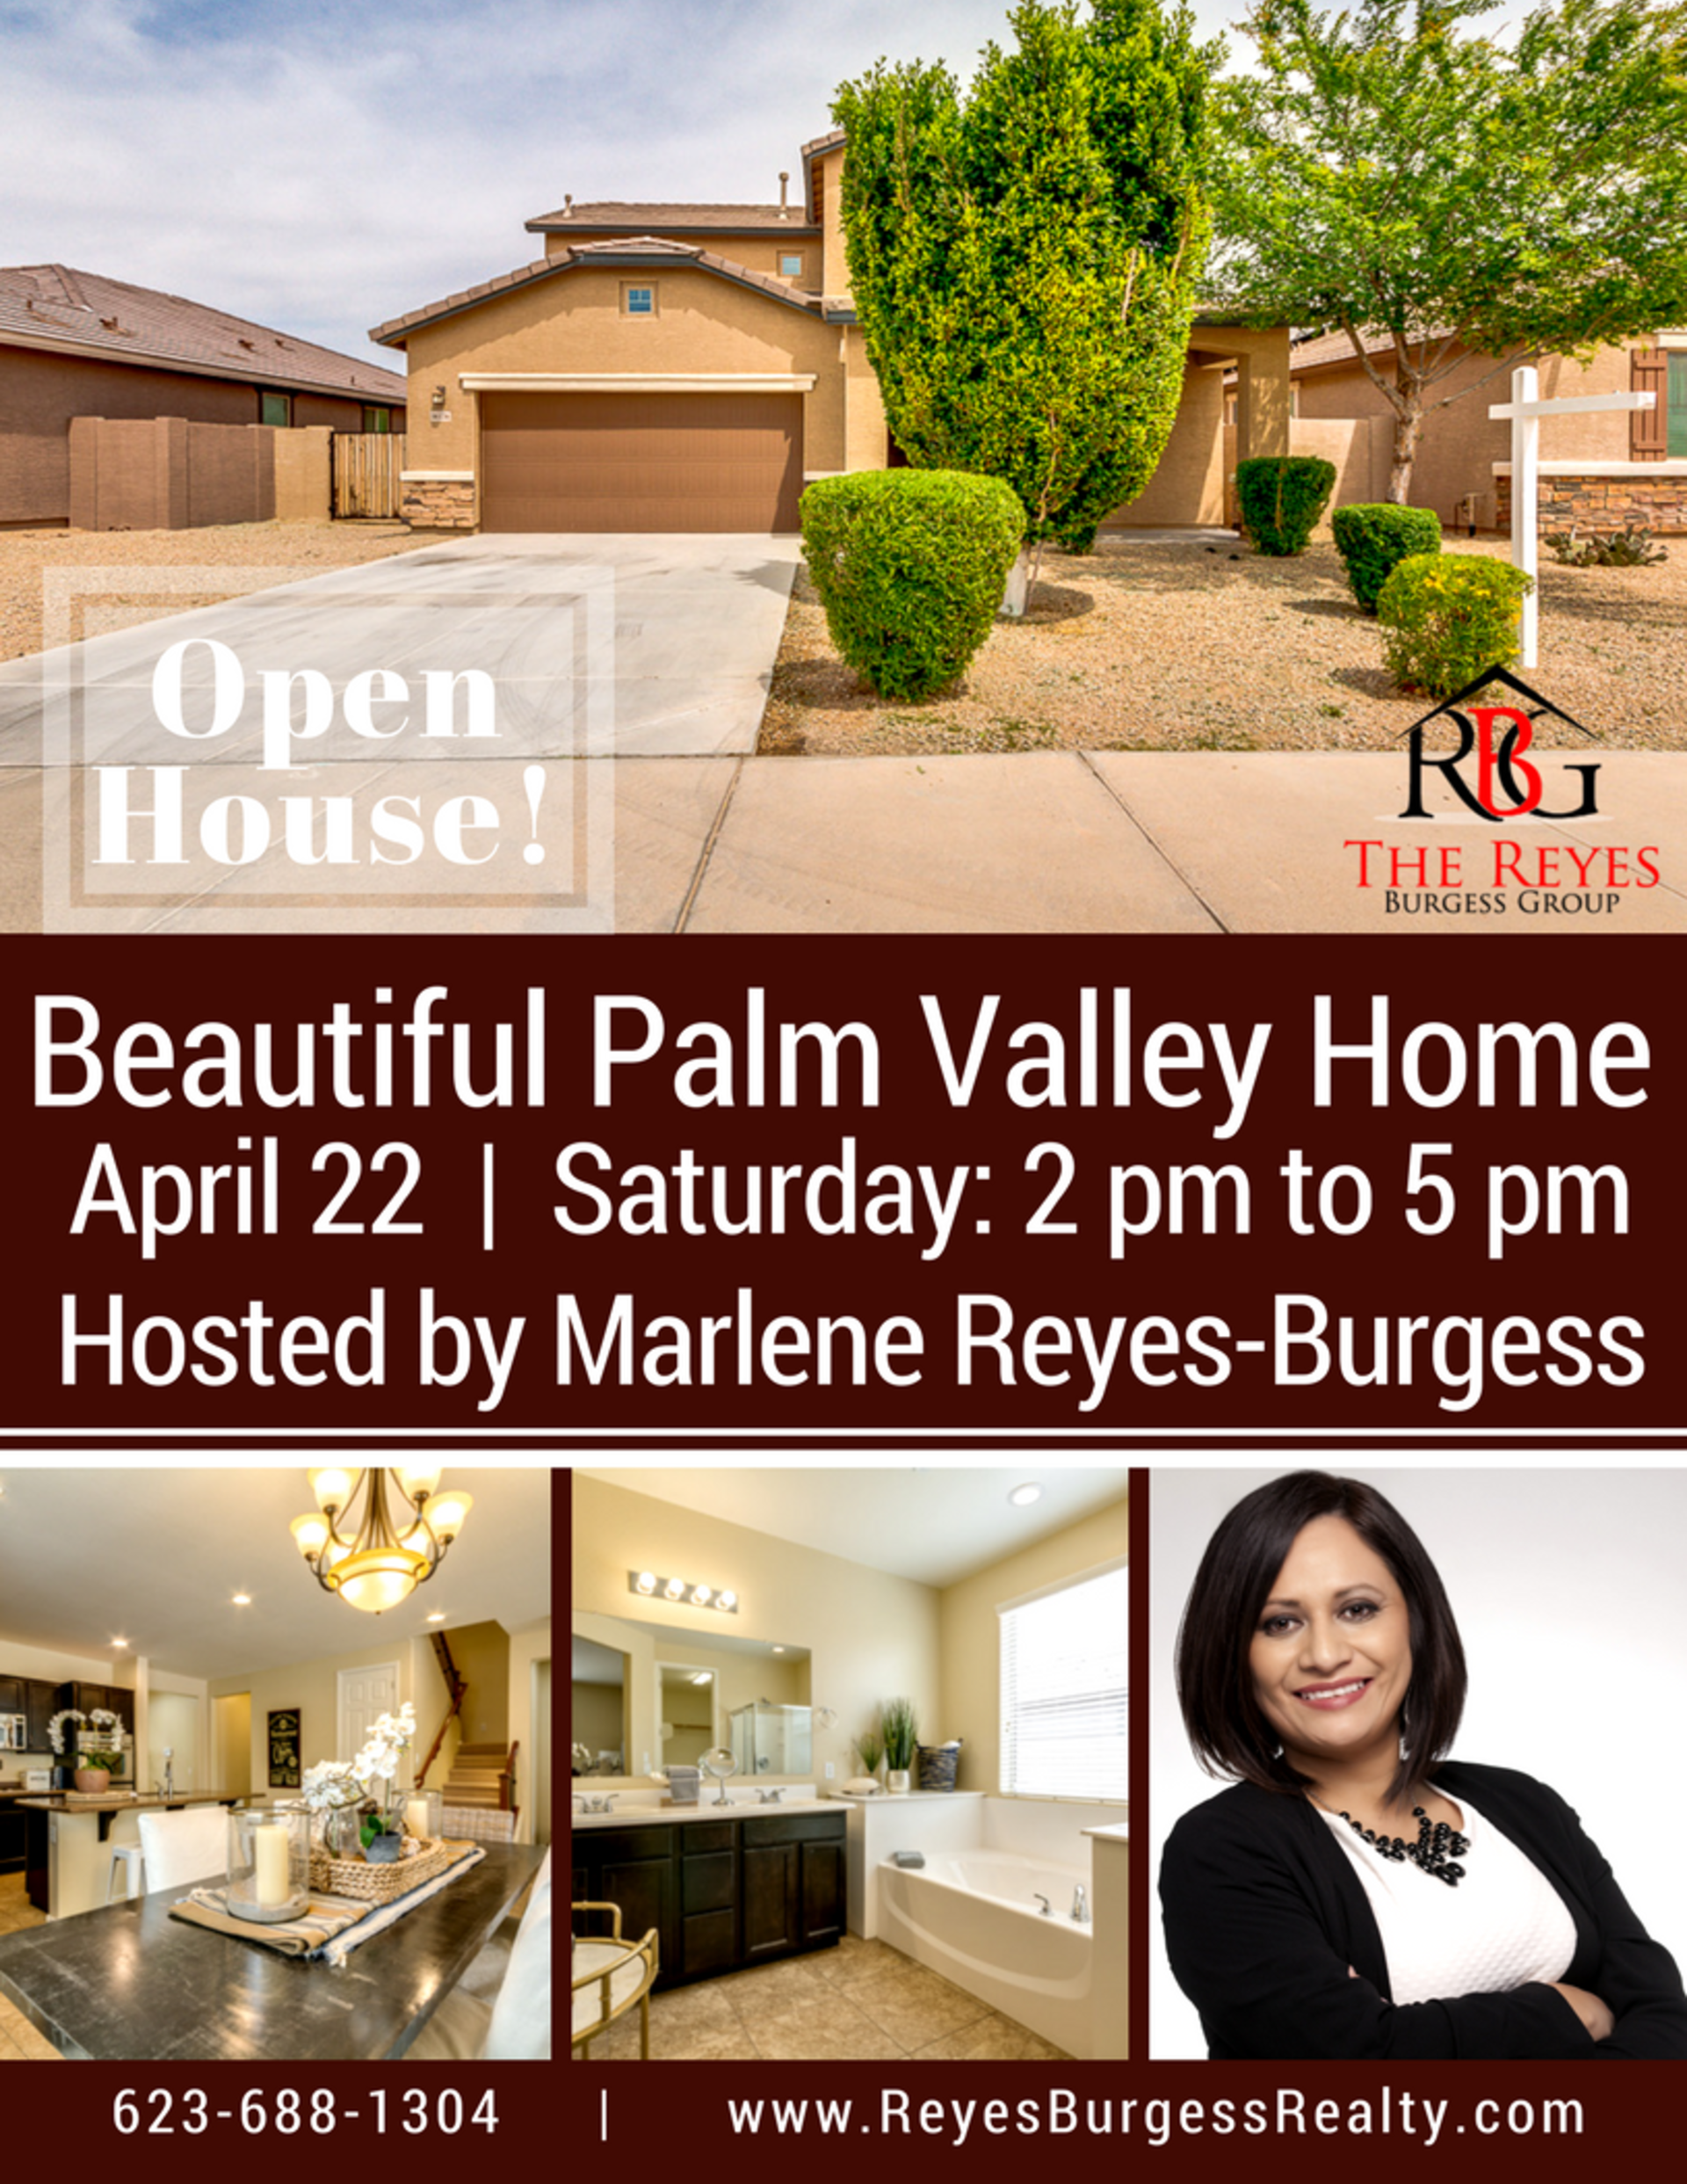 Open House! Beautiful Palm Valley Home!